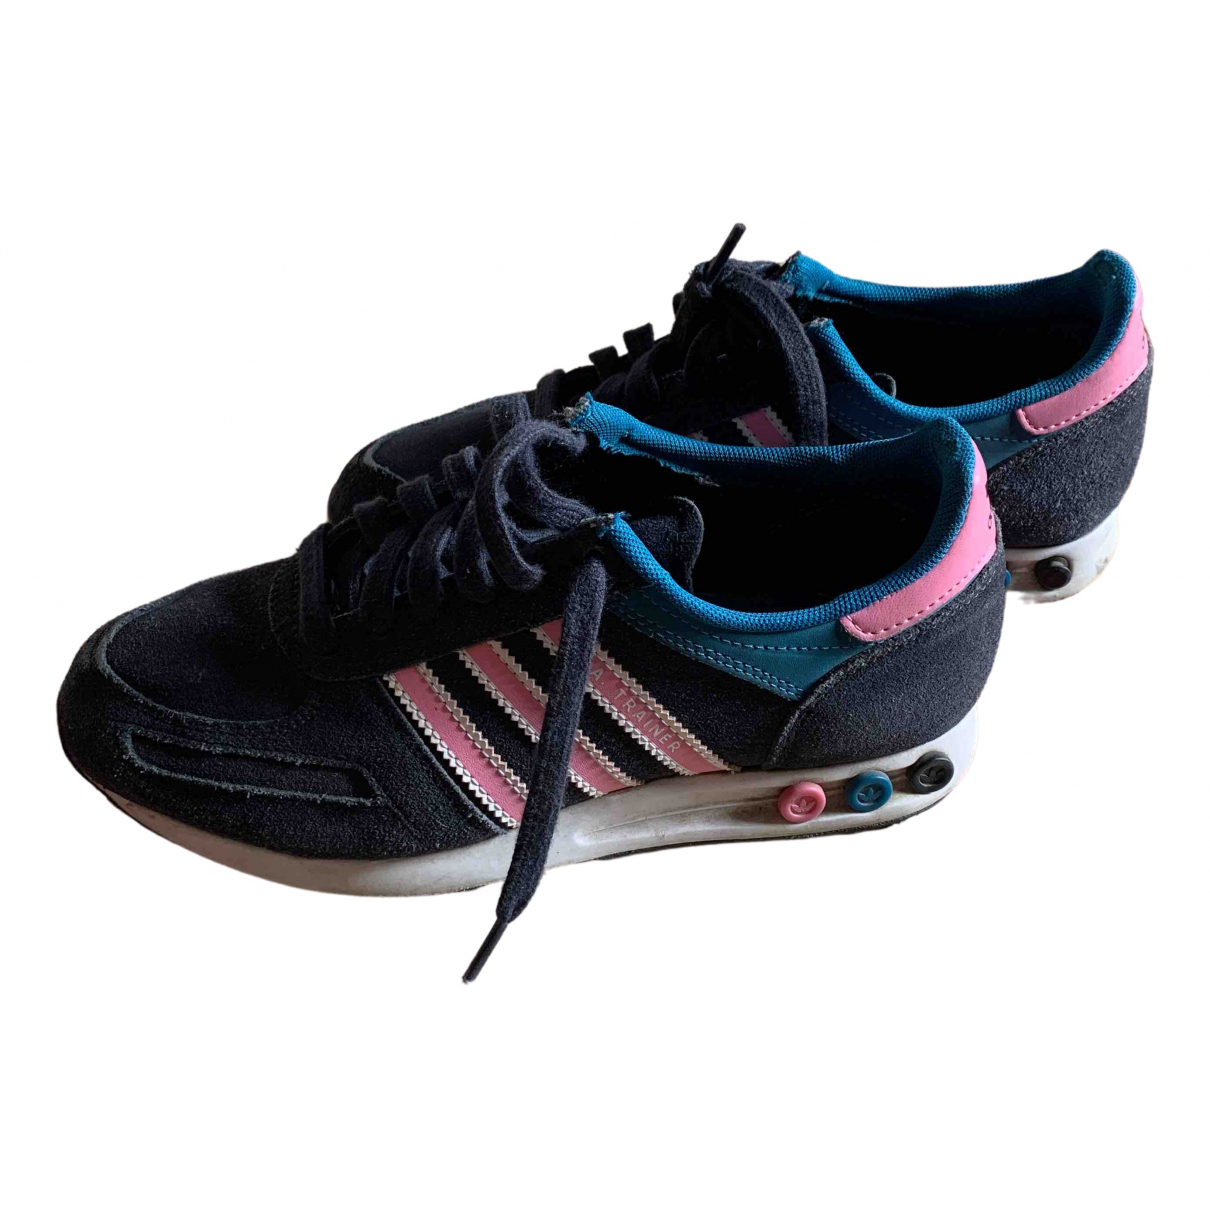 Adidas \N Blue Suede Trainers for Women 6.5 US